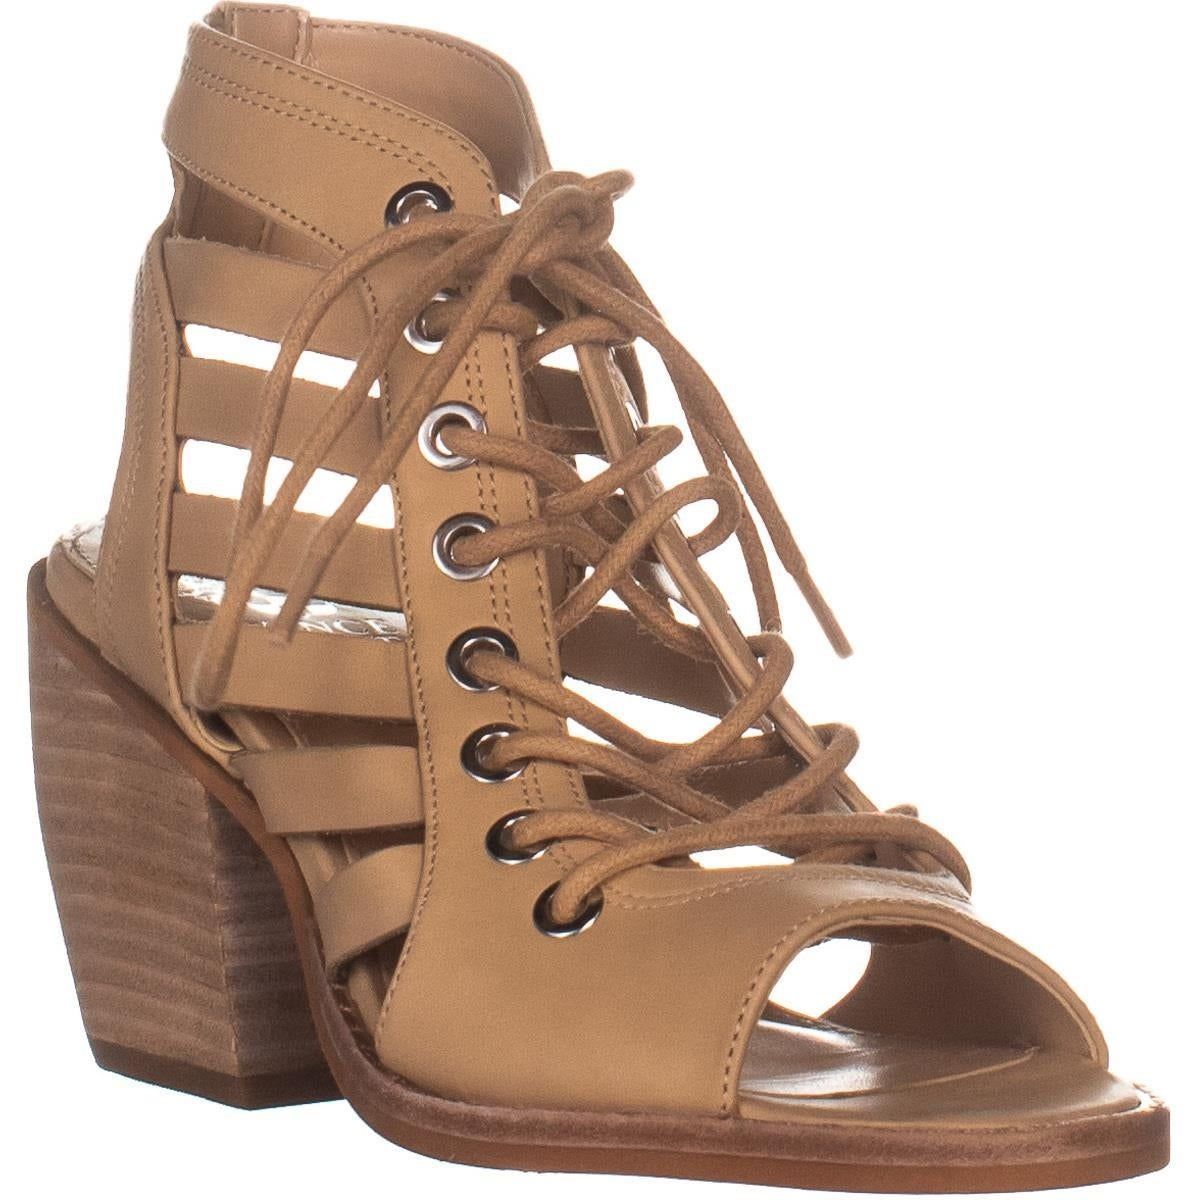 e03f50e02c4 Buy Brown Vince Camuto Women s Sandals Online at Overstock